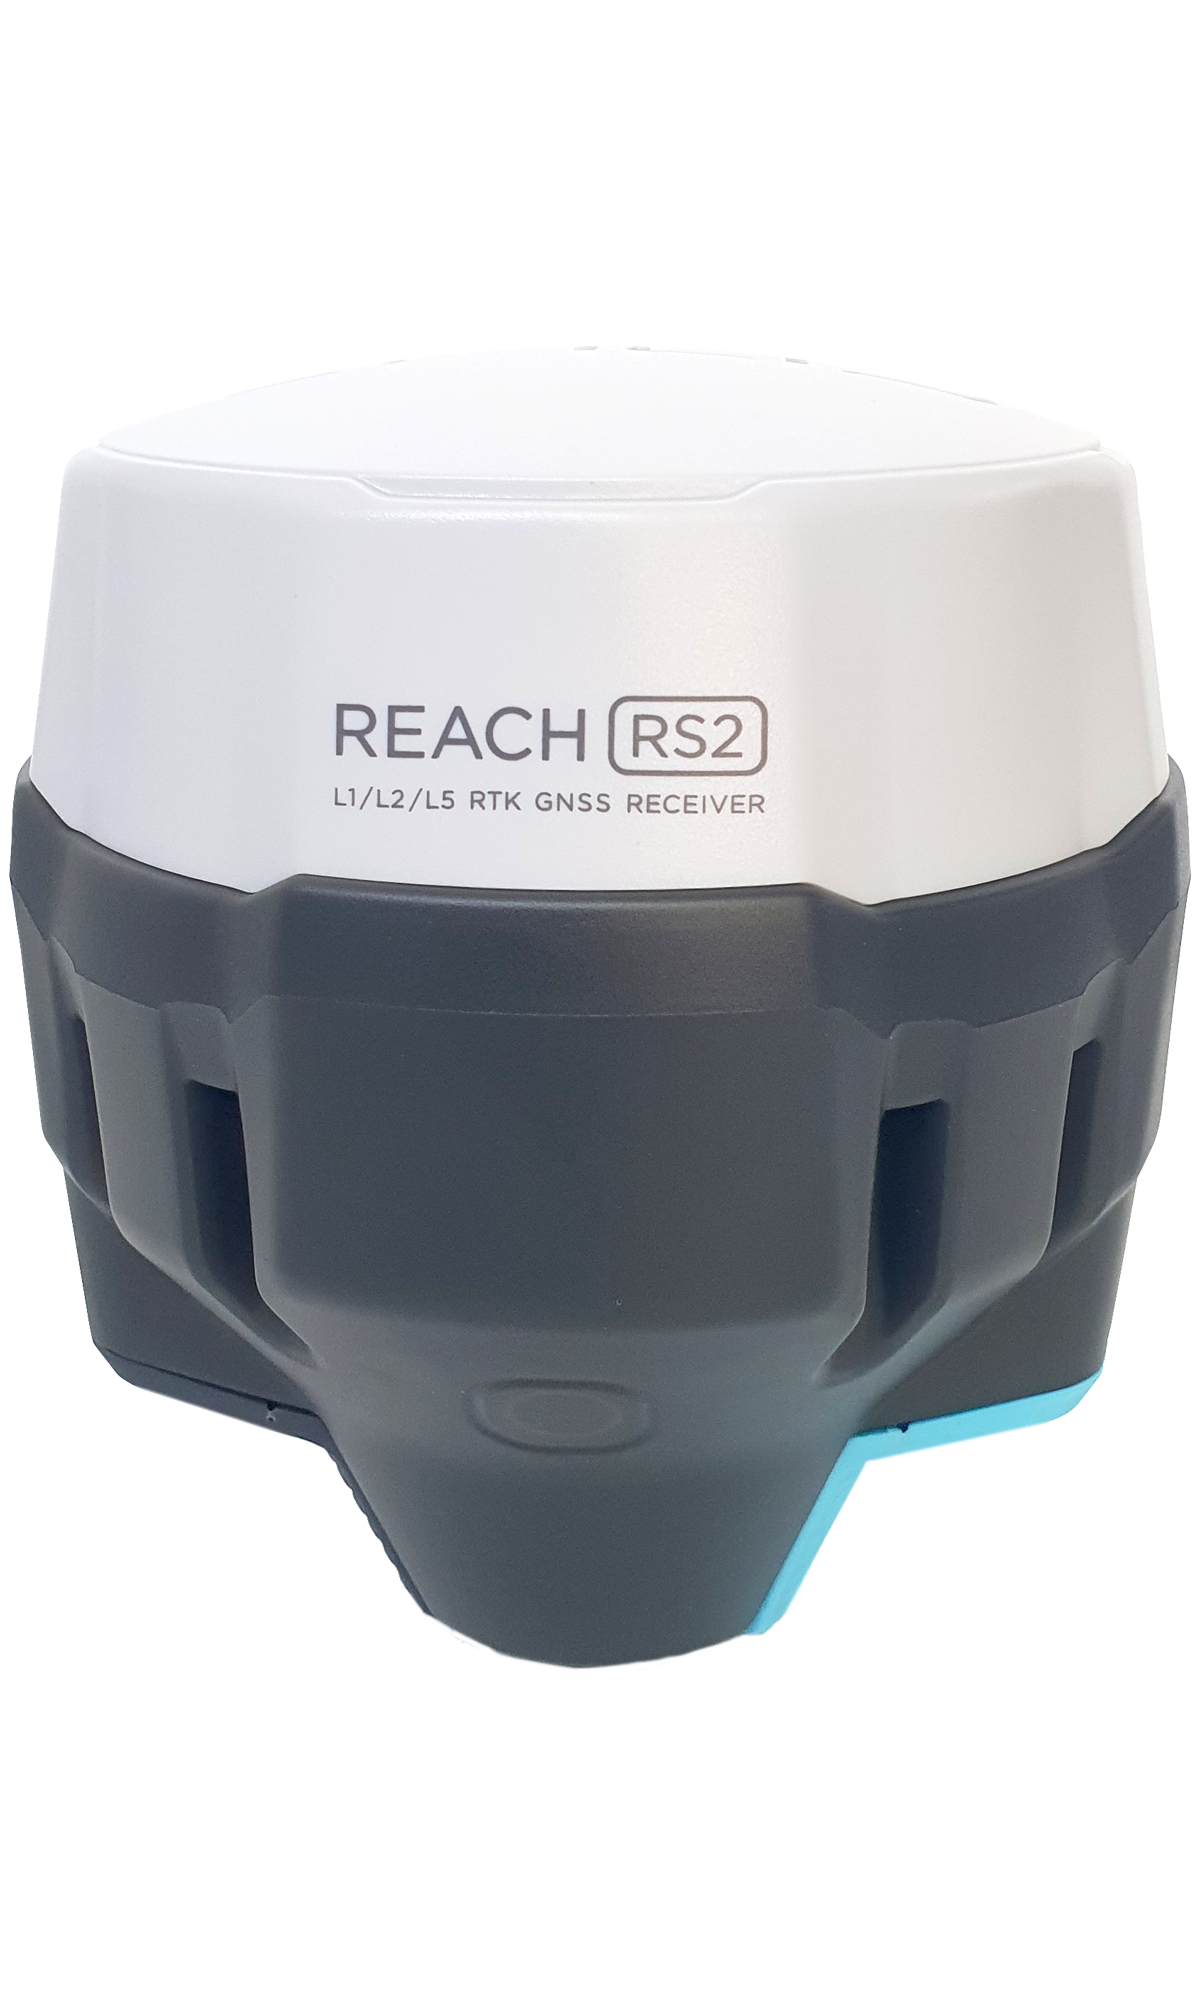 emlid-reach-rs2